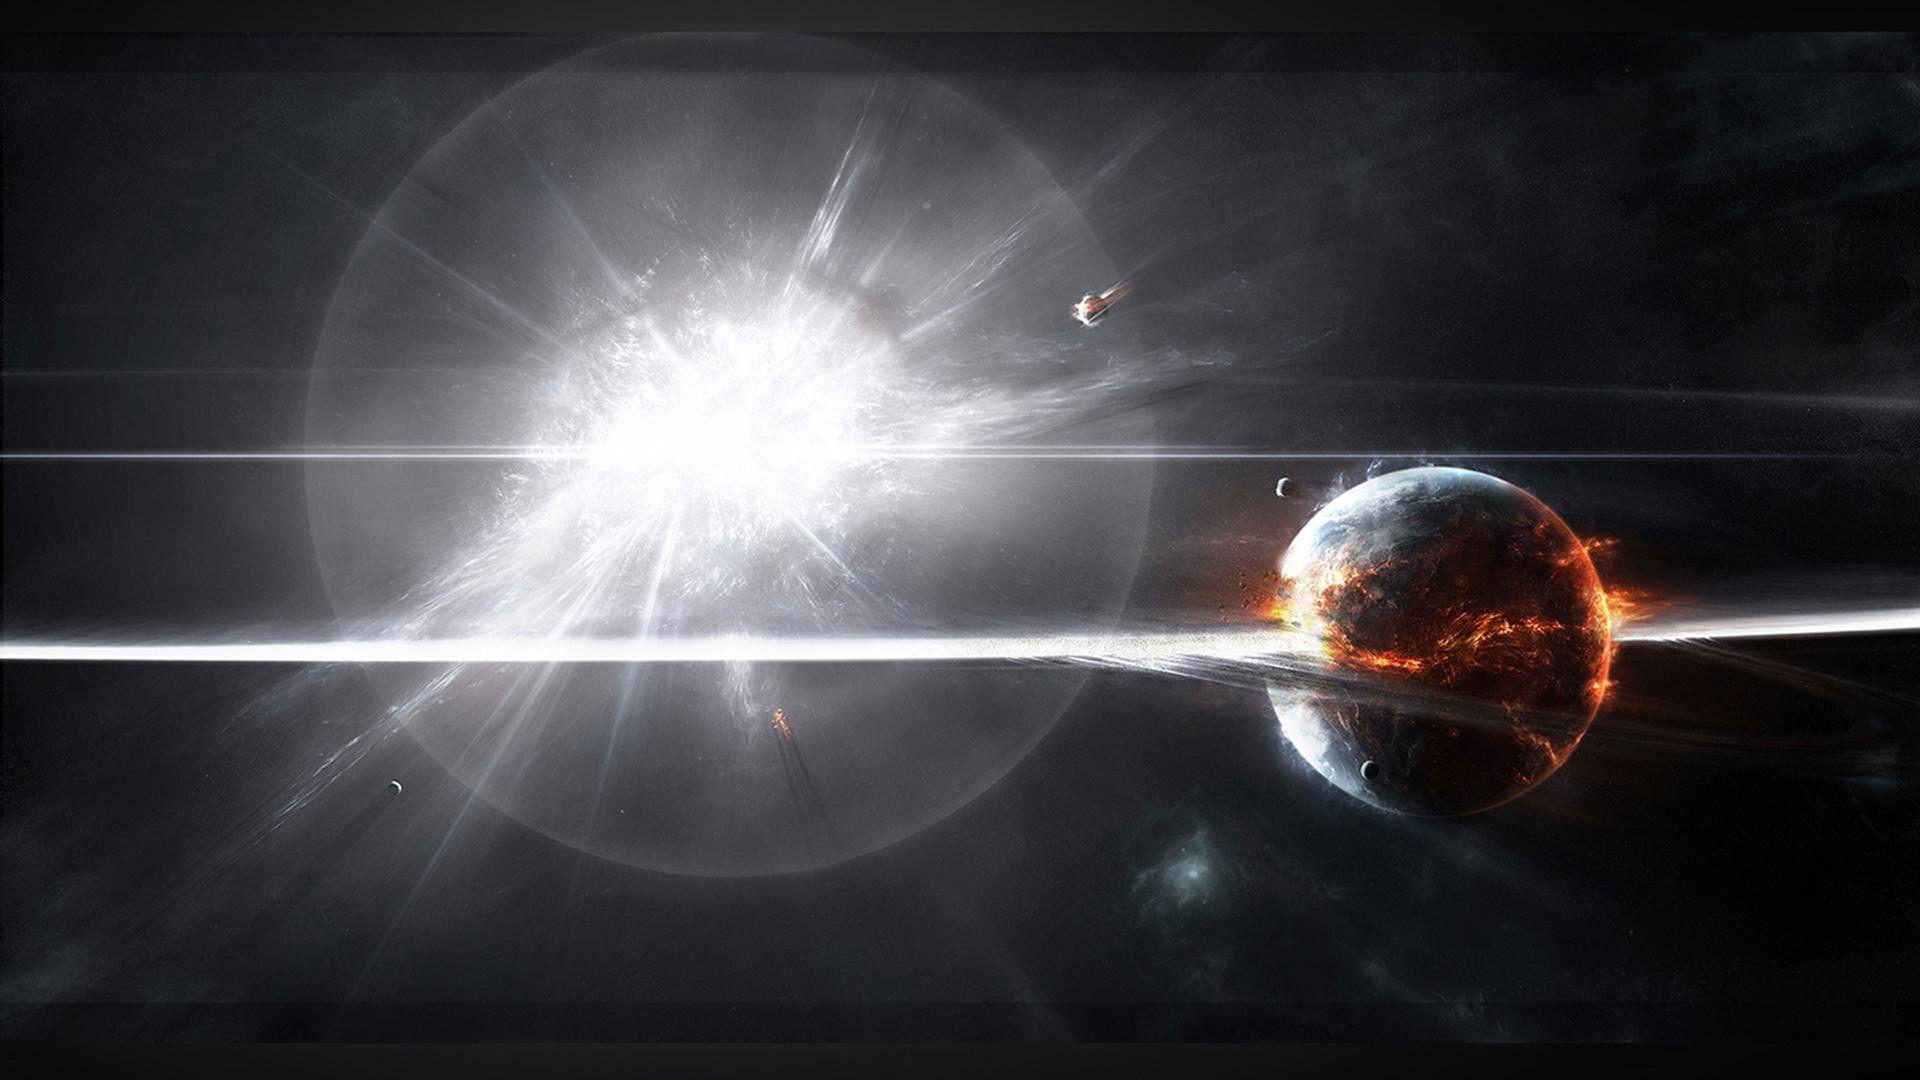 hd nasa star explosion - photo #3